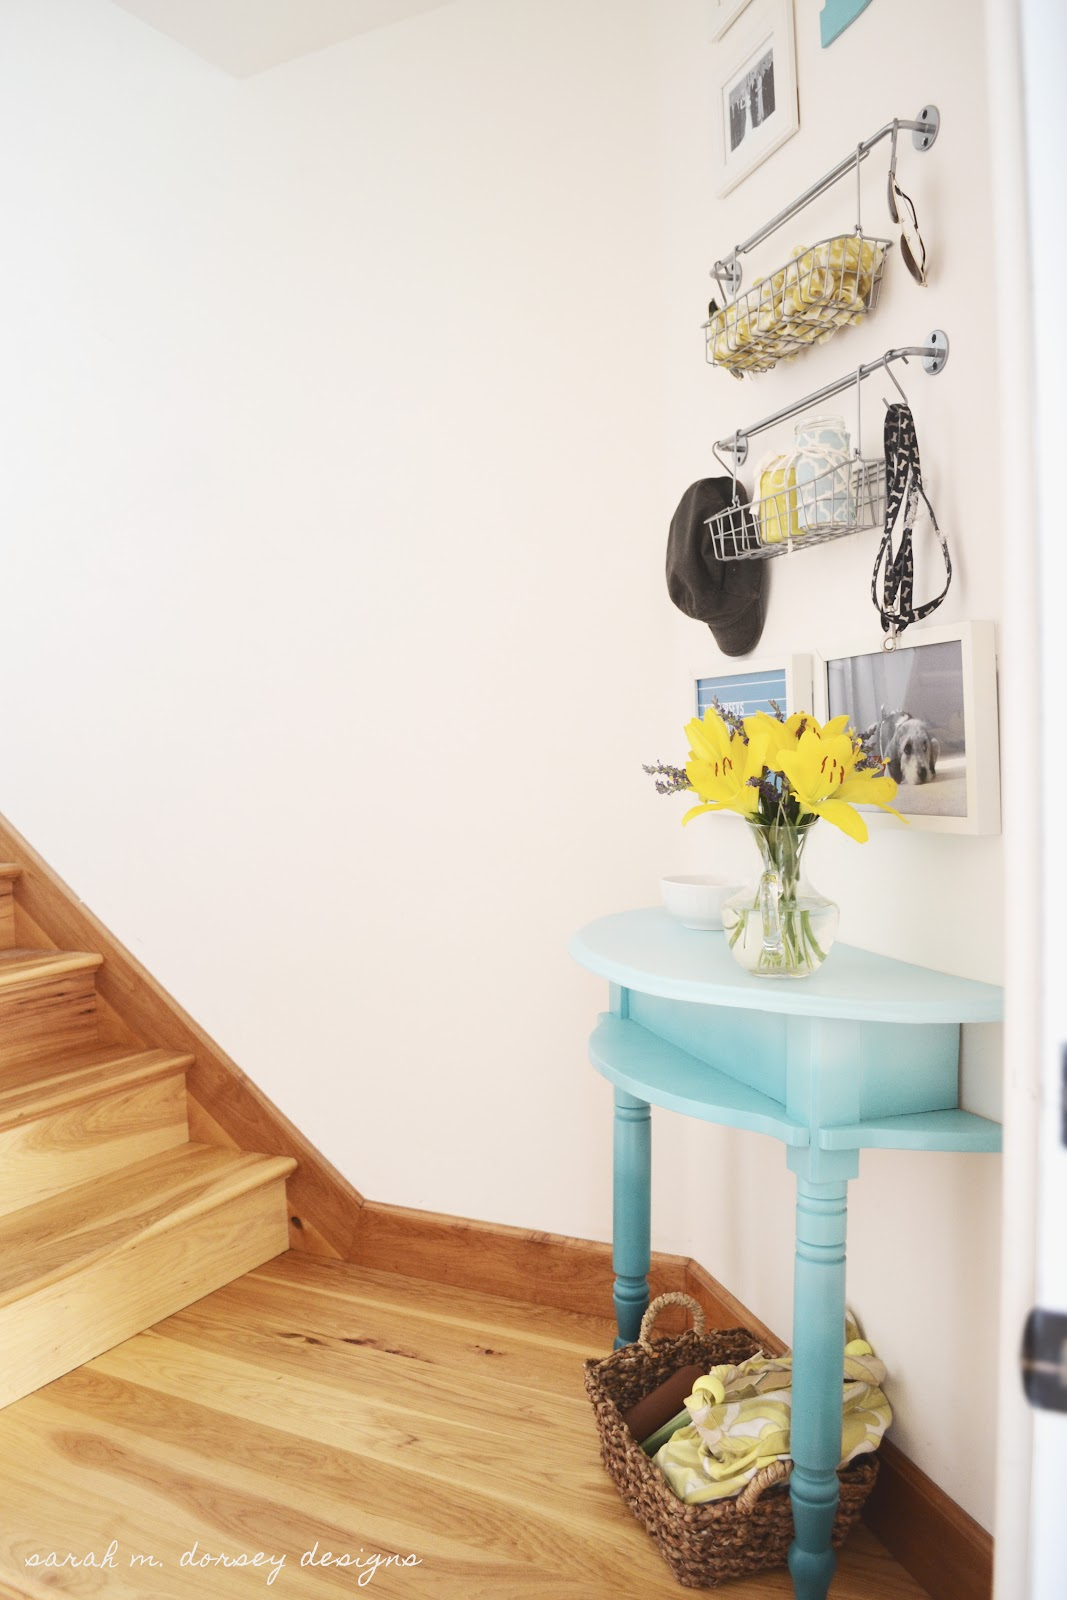 Do you have a small entryway? This entry table was cut from a larger table and I love it, from Sarah M. Dorsey Designs.